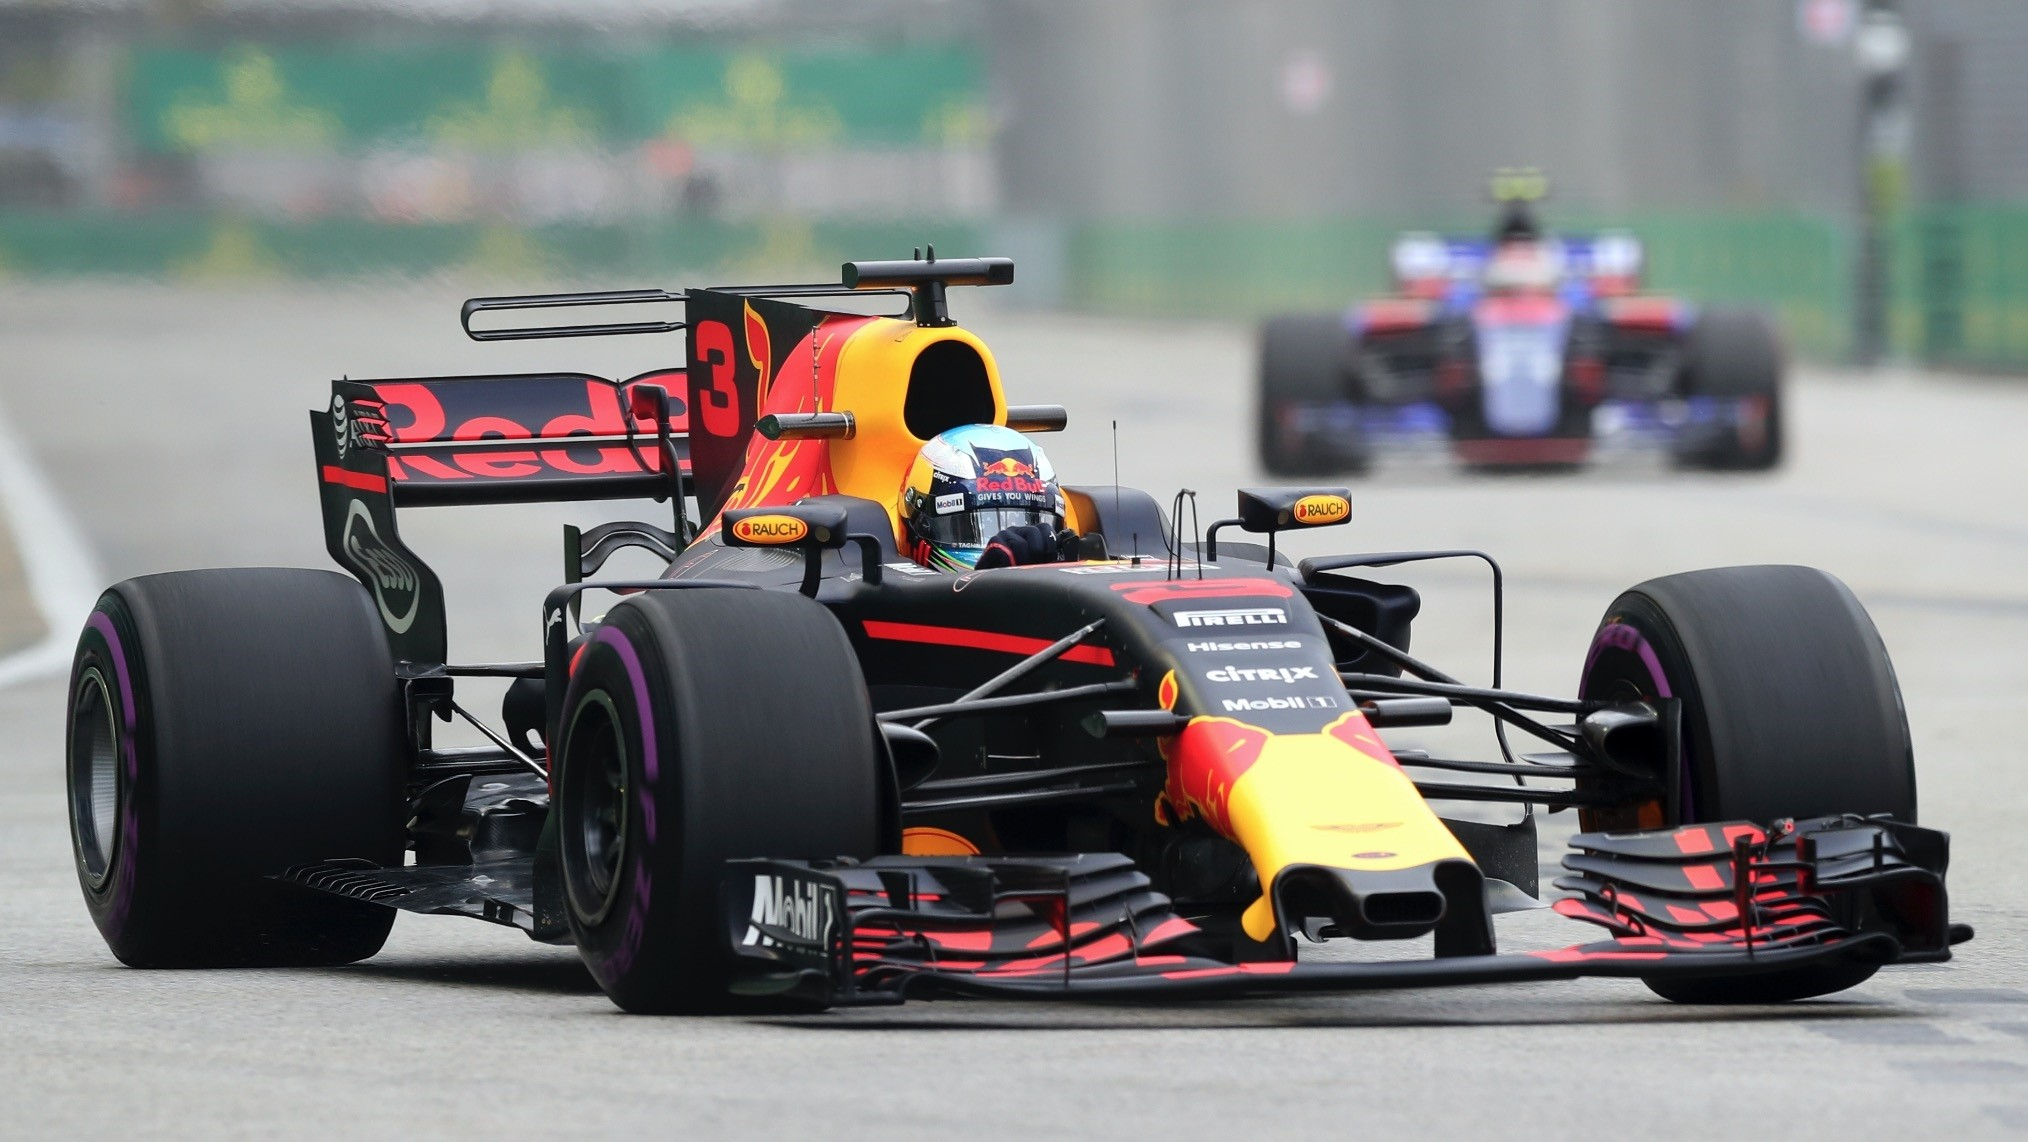 Red Bull driver Daniel Ricciardo crushed his own lap record as he posted the fastest time in the first practice session for the Singapore Grand Prix on Friday.